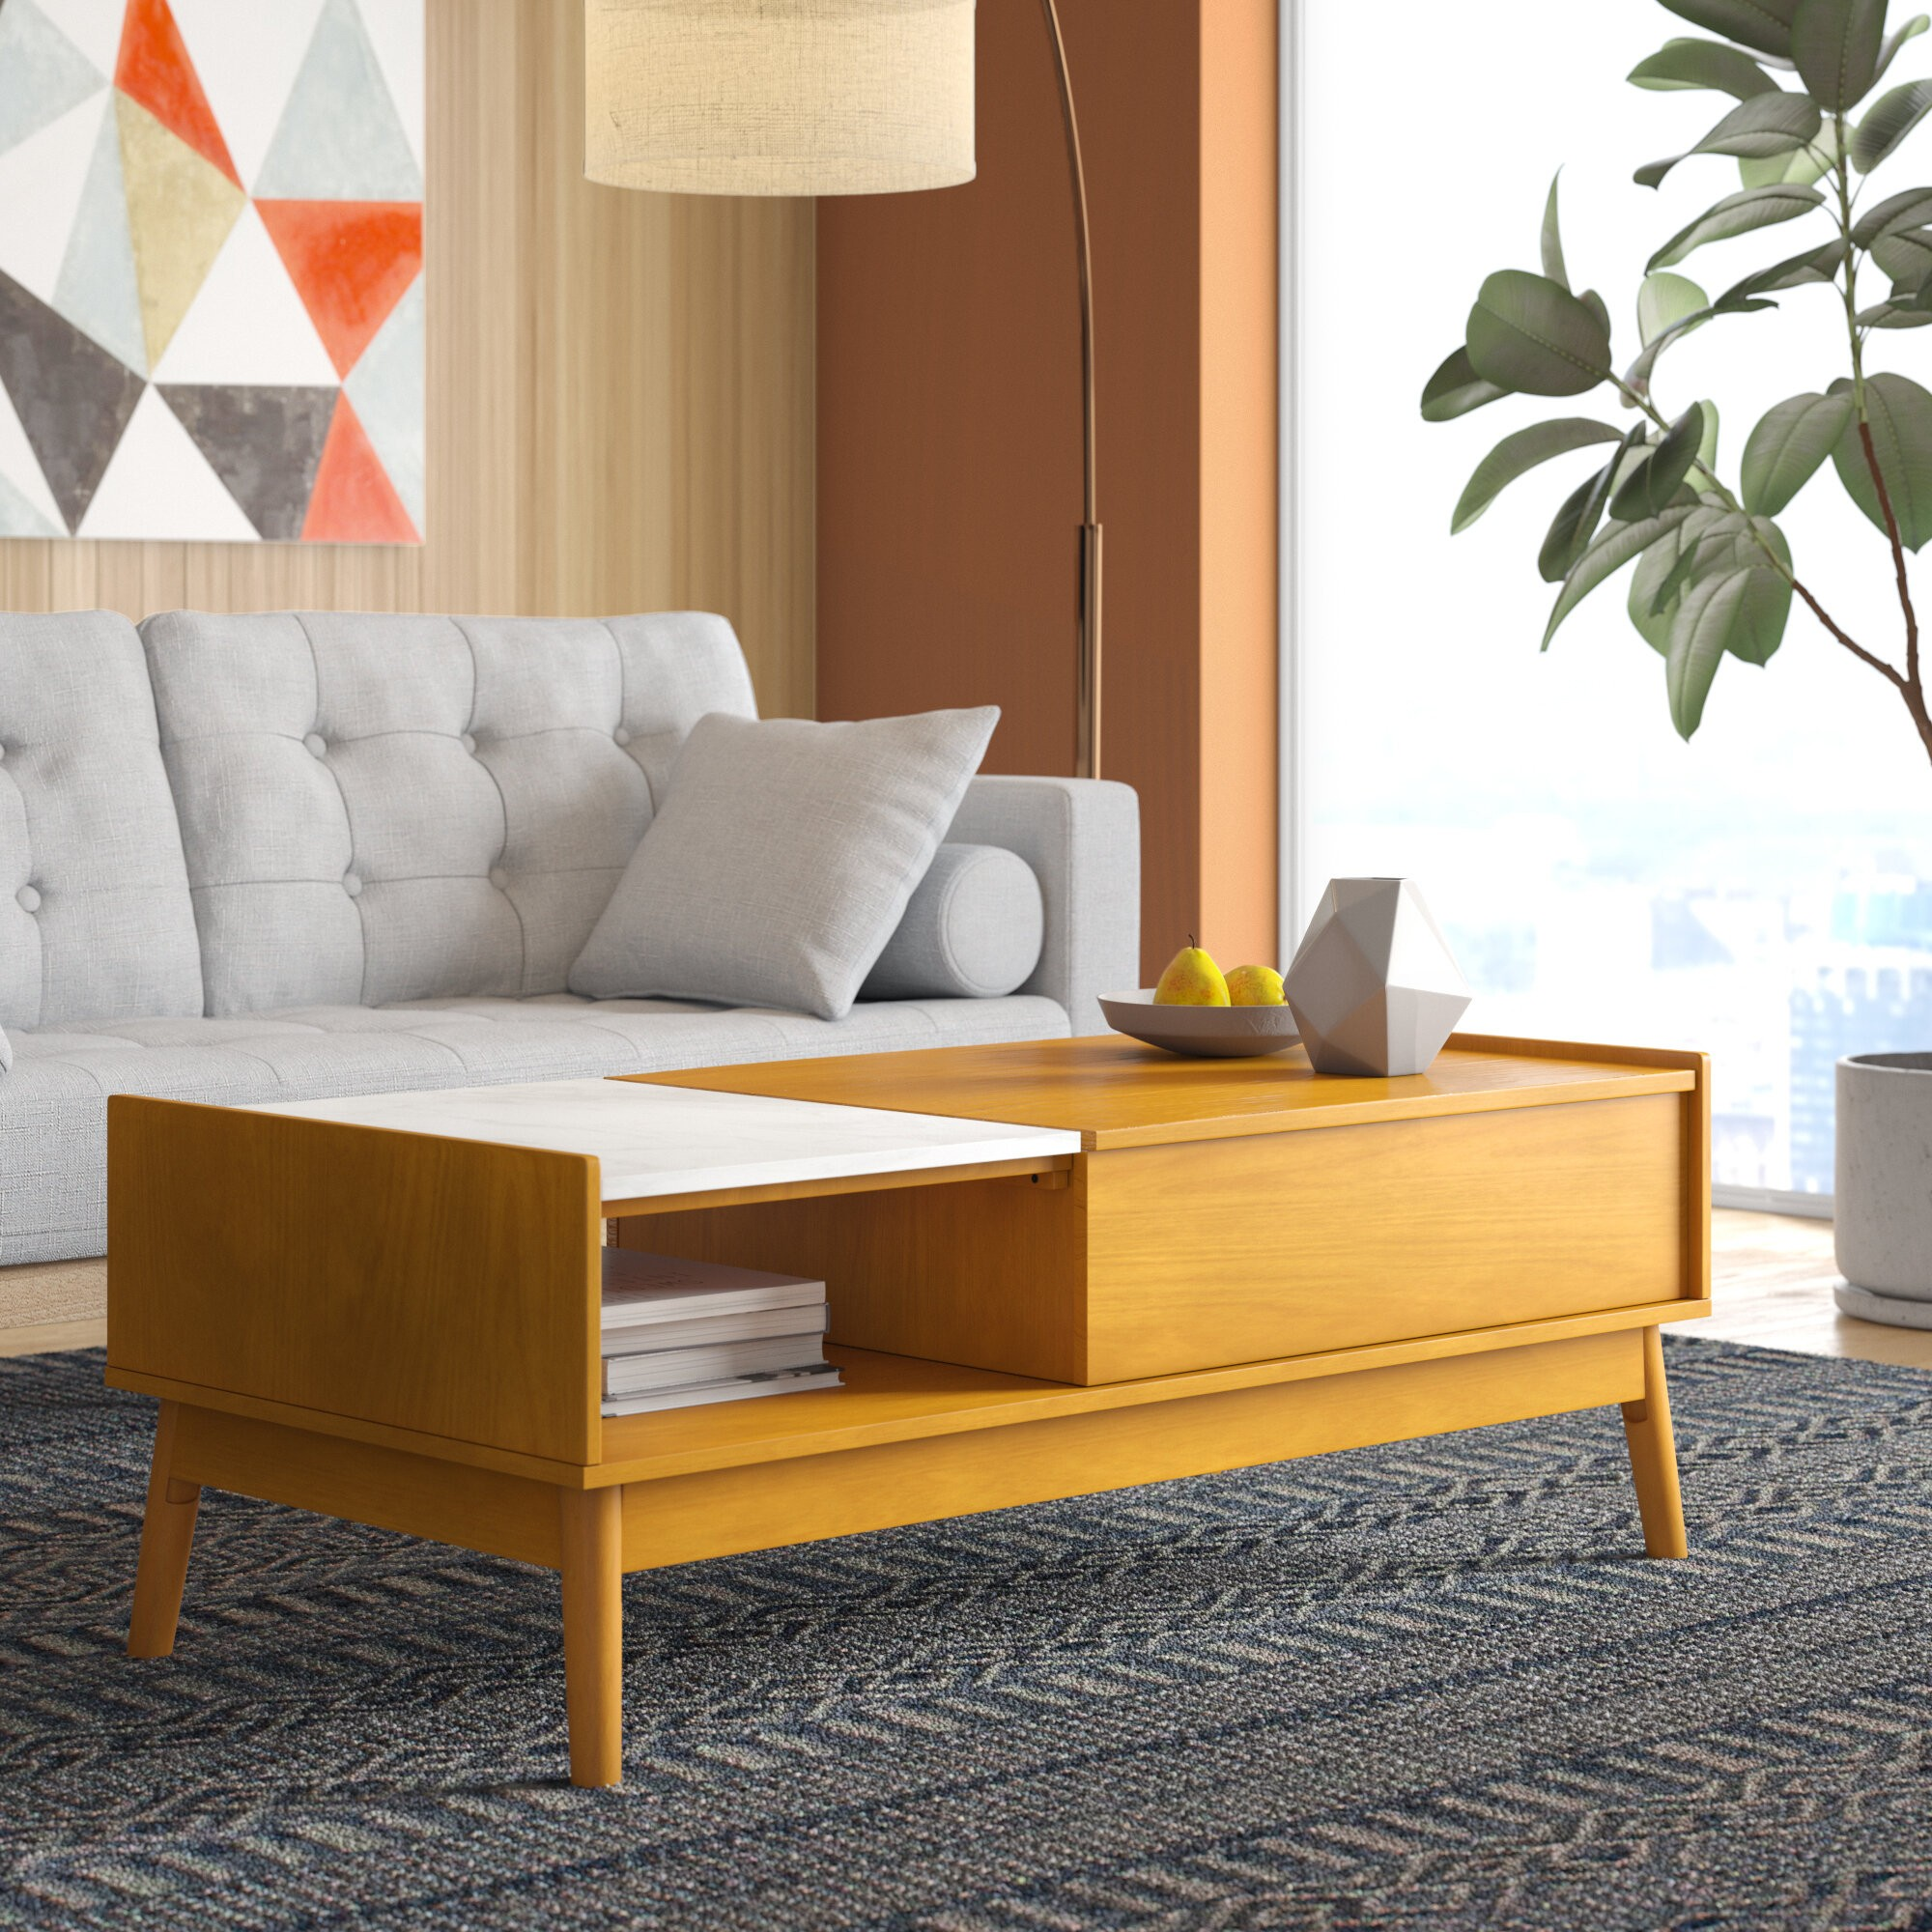 10 best lift top coffee tables for 2021